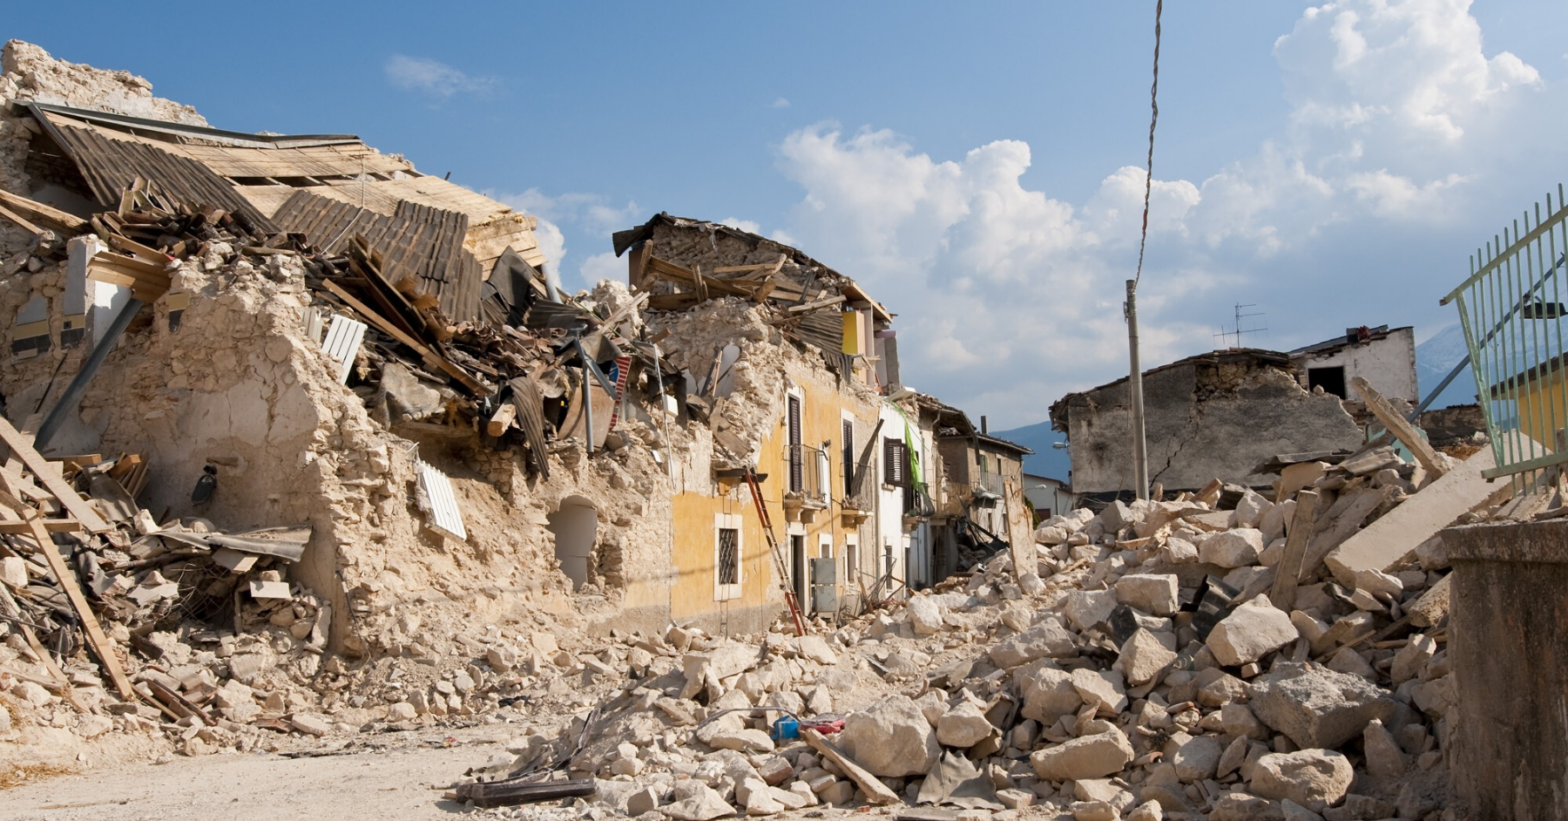 ruined-building-by-blast-pressure-and-extreme-events